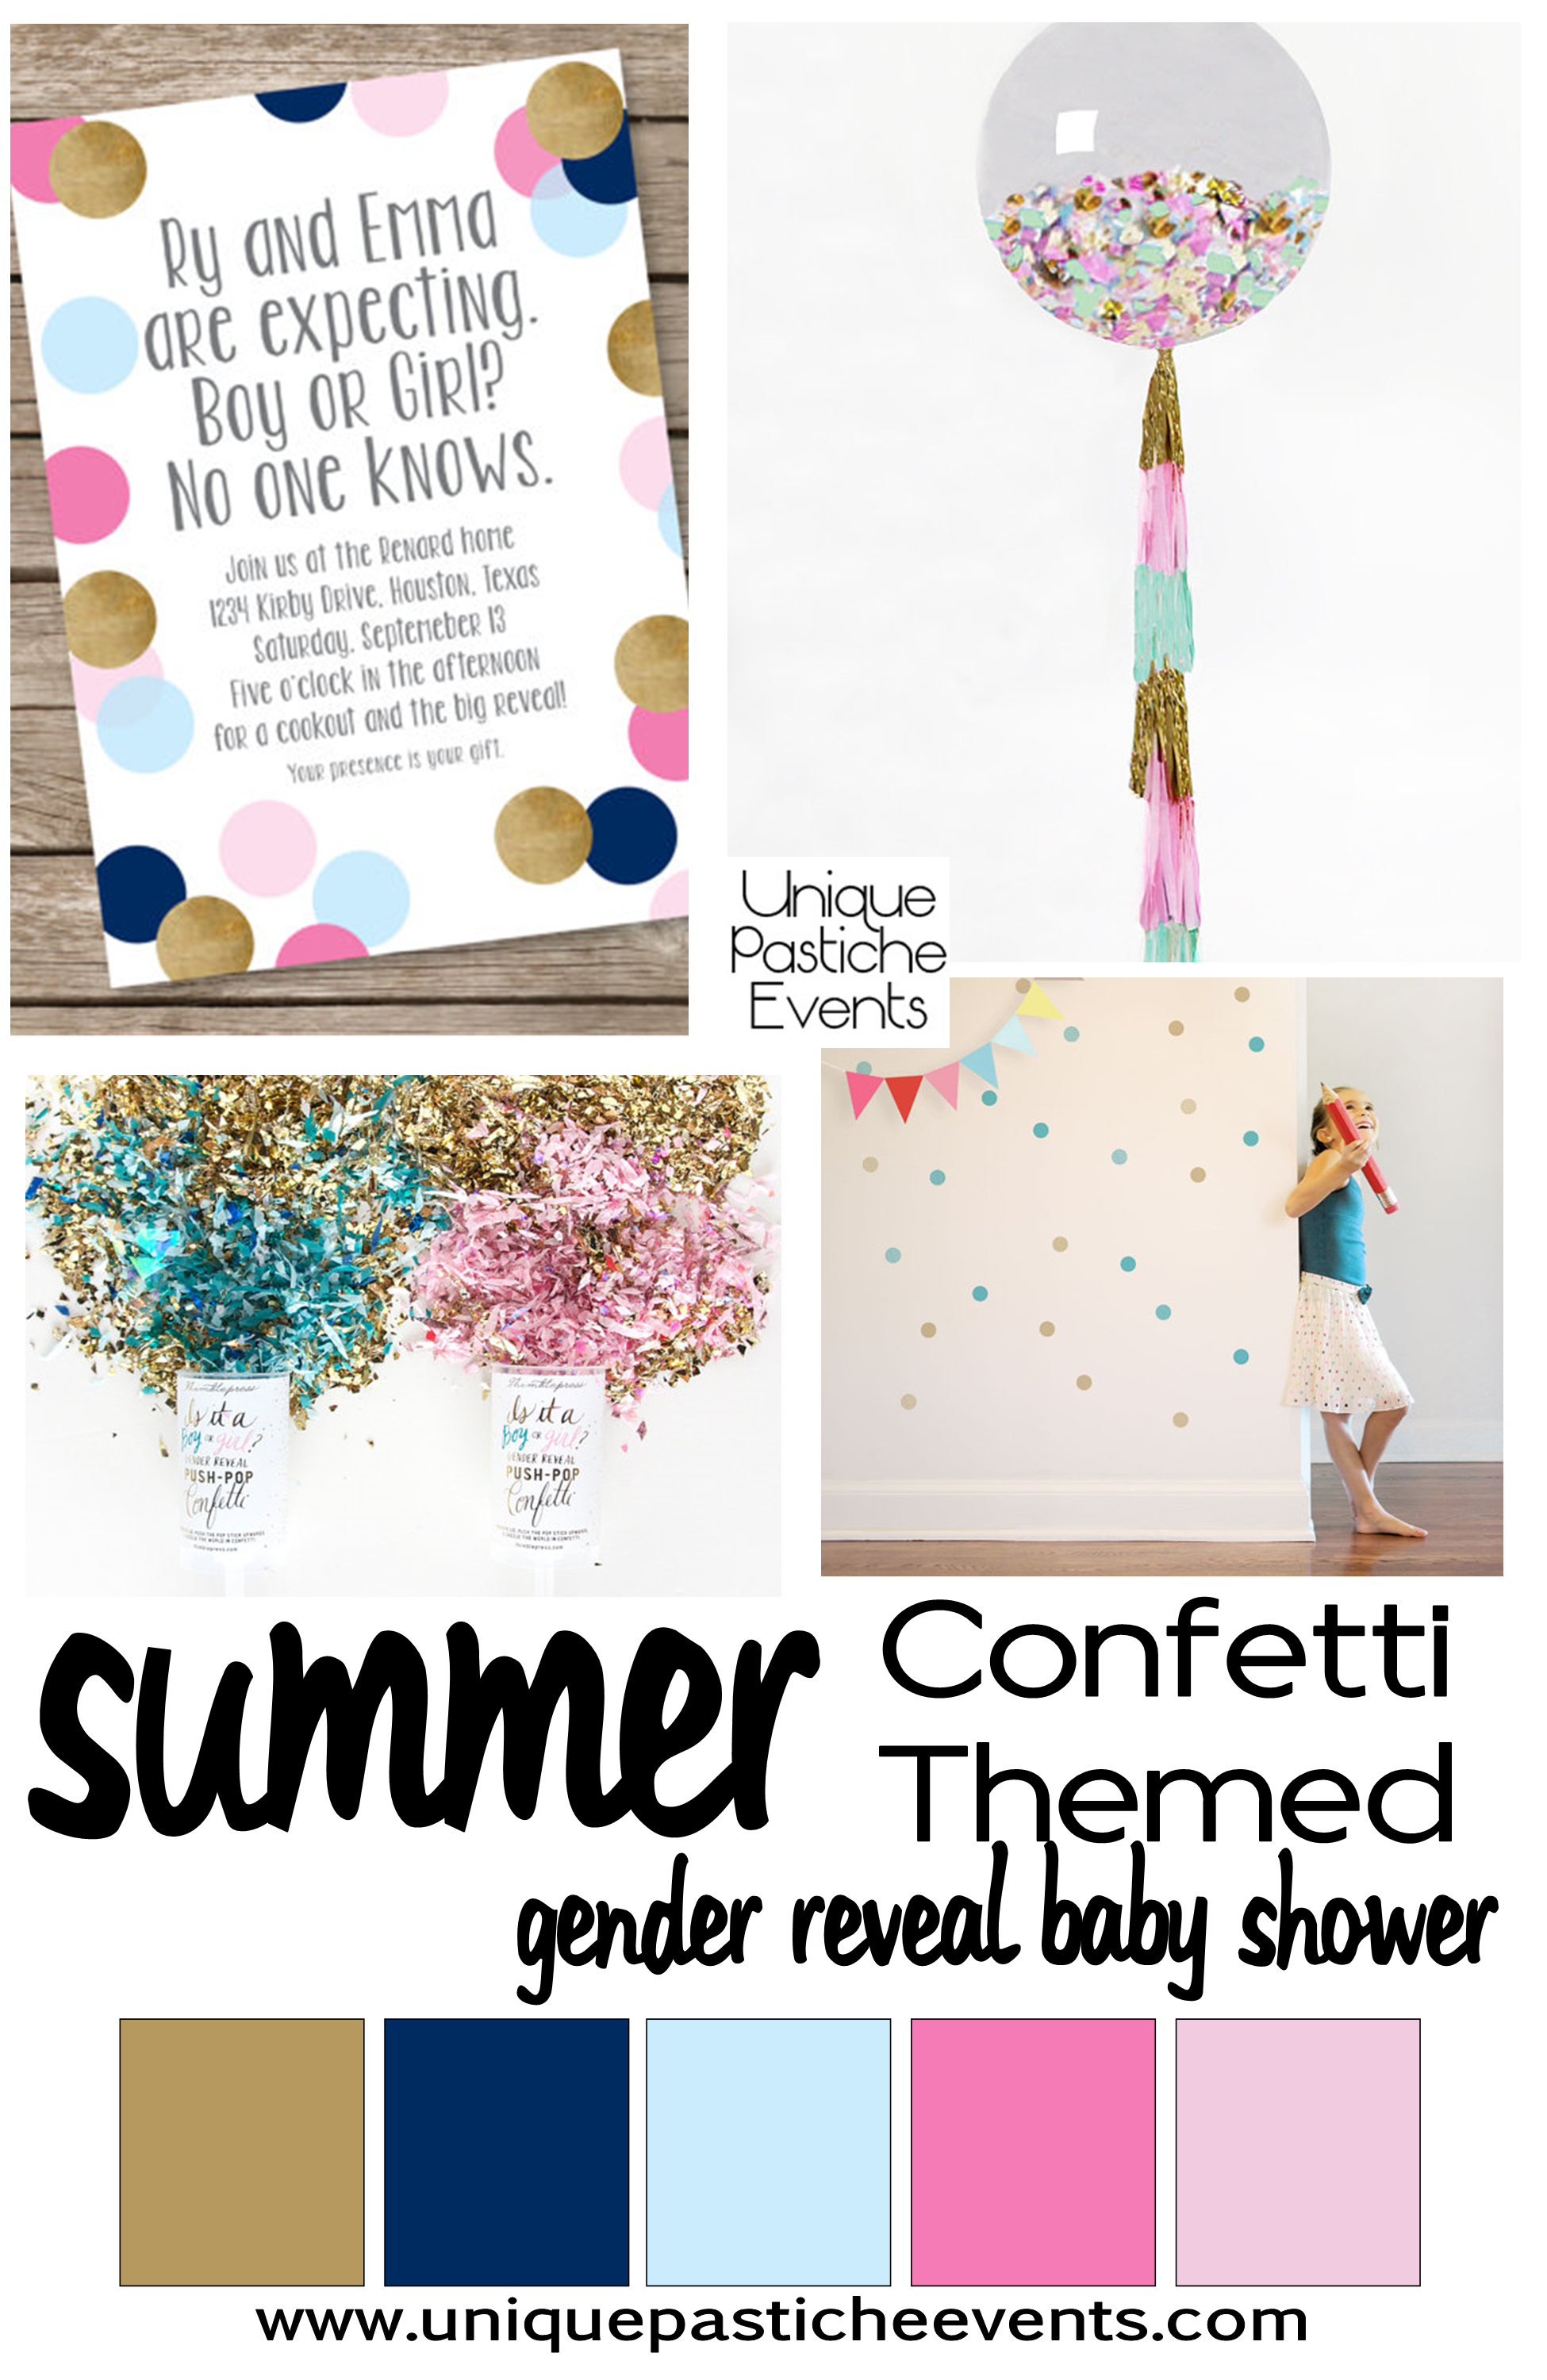 confetti themed gender reveal baby shower - Gender Reveal Baby Shower